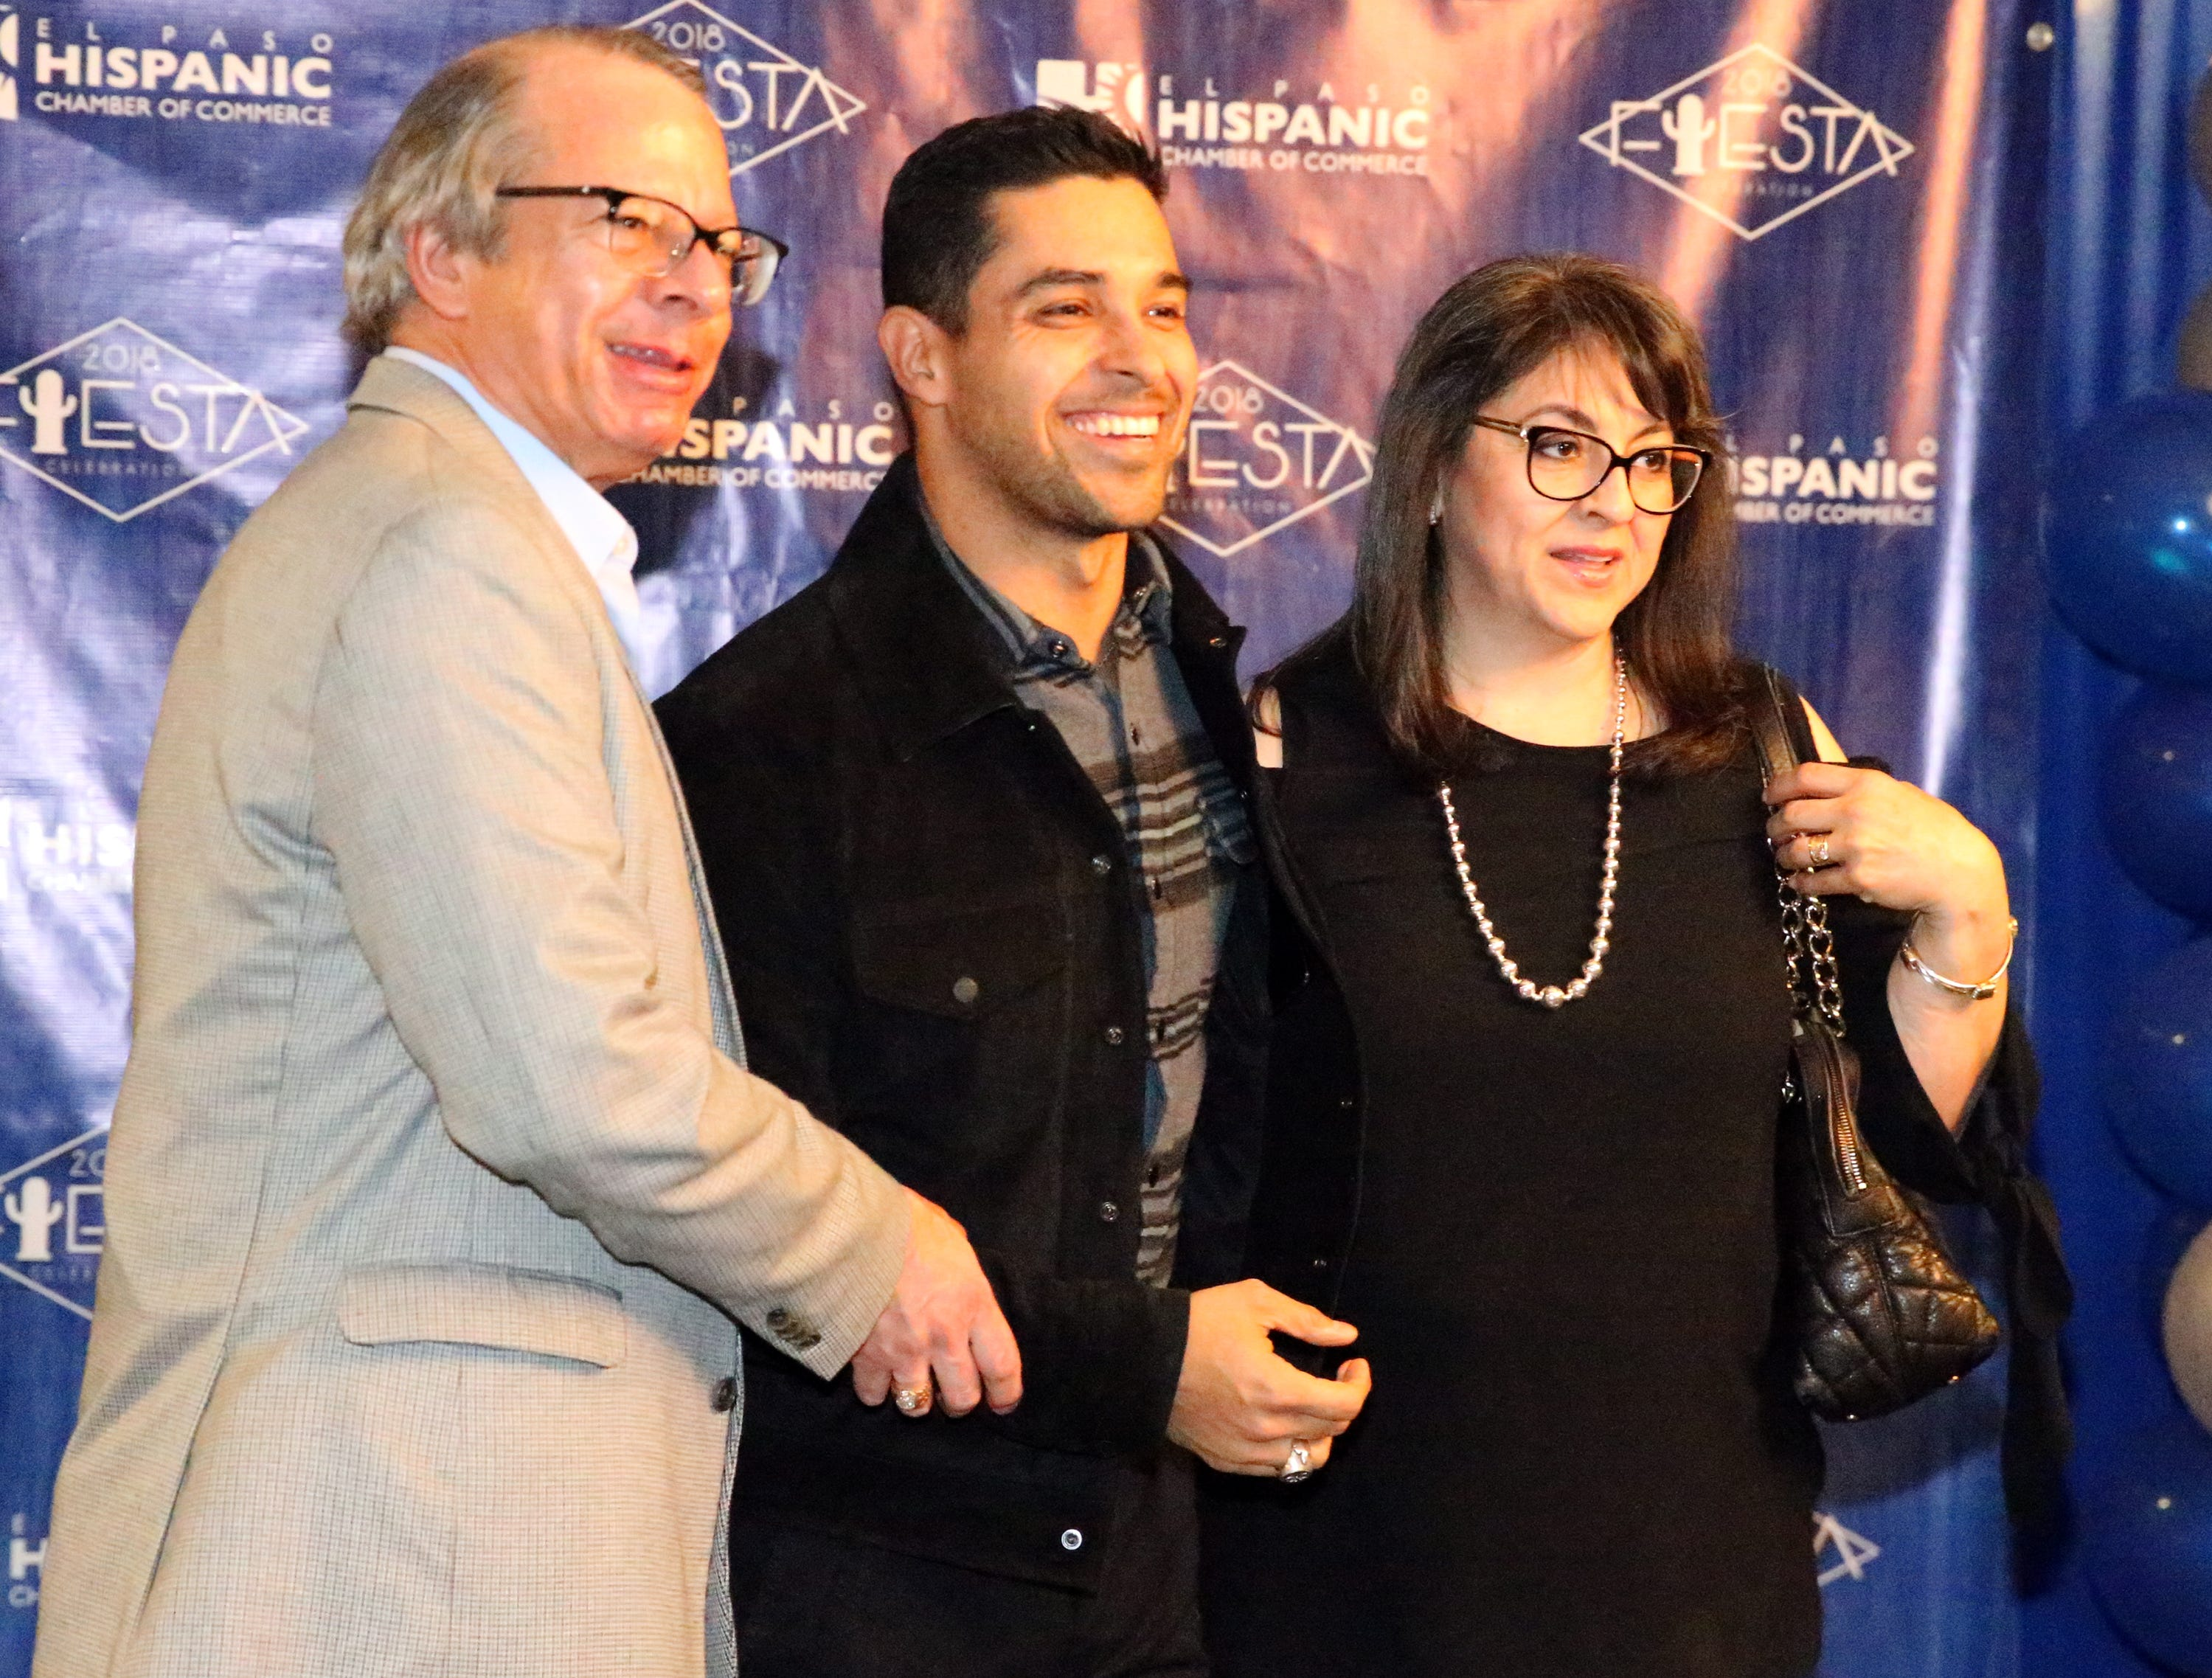 David and Sandra Saucedo get a photo taken with actor/producer Wilmer Valderrama Saturday.